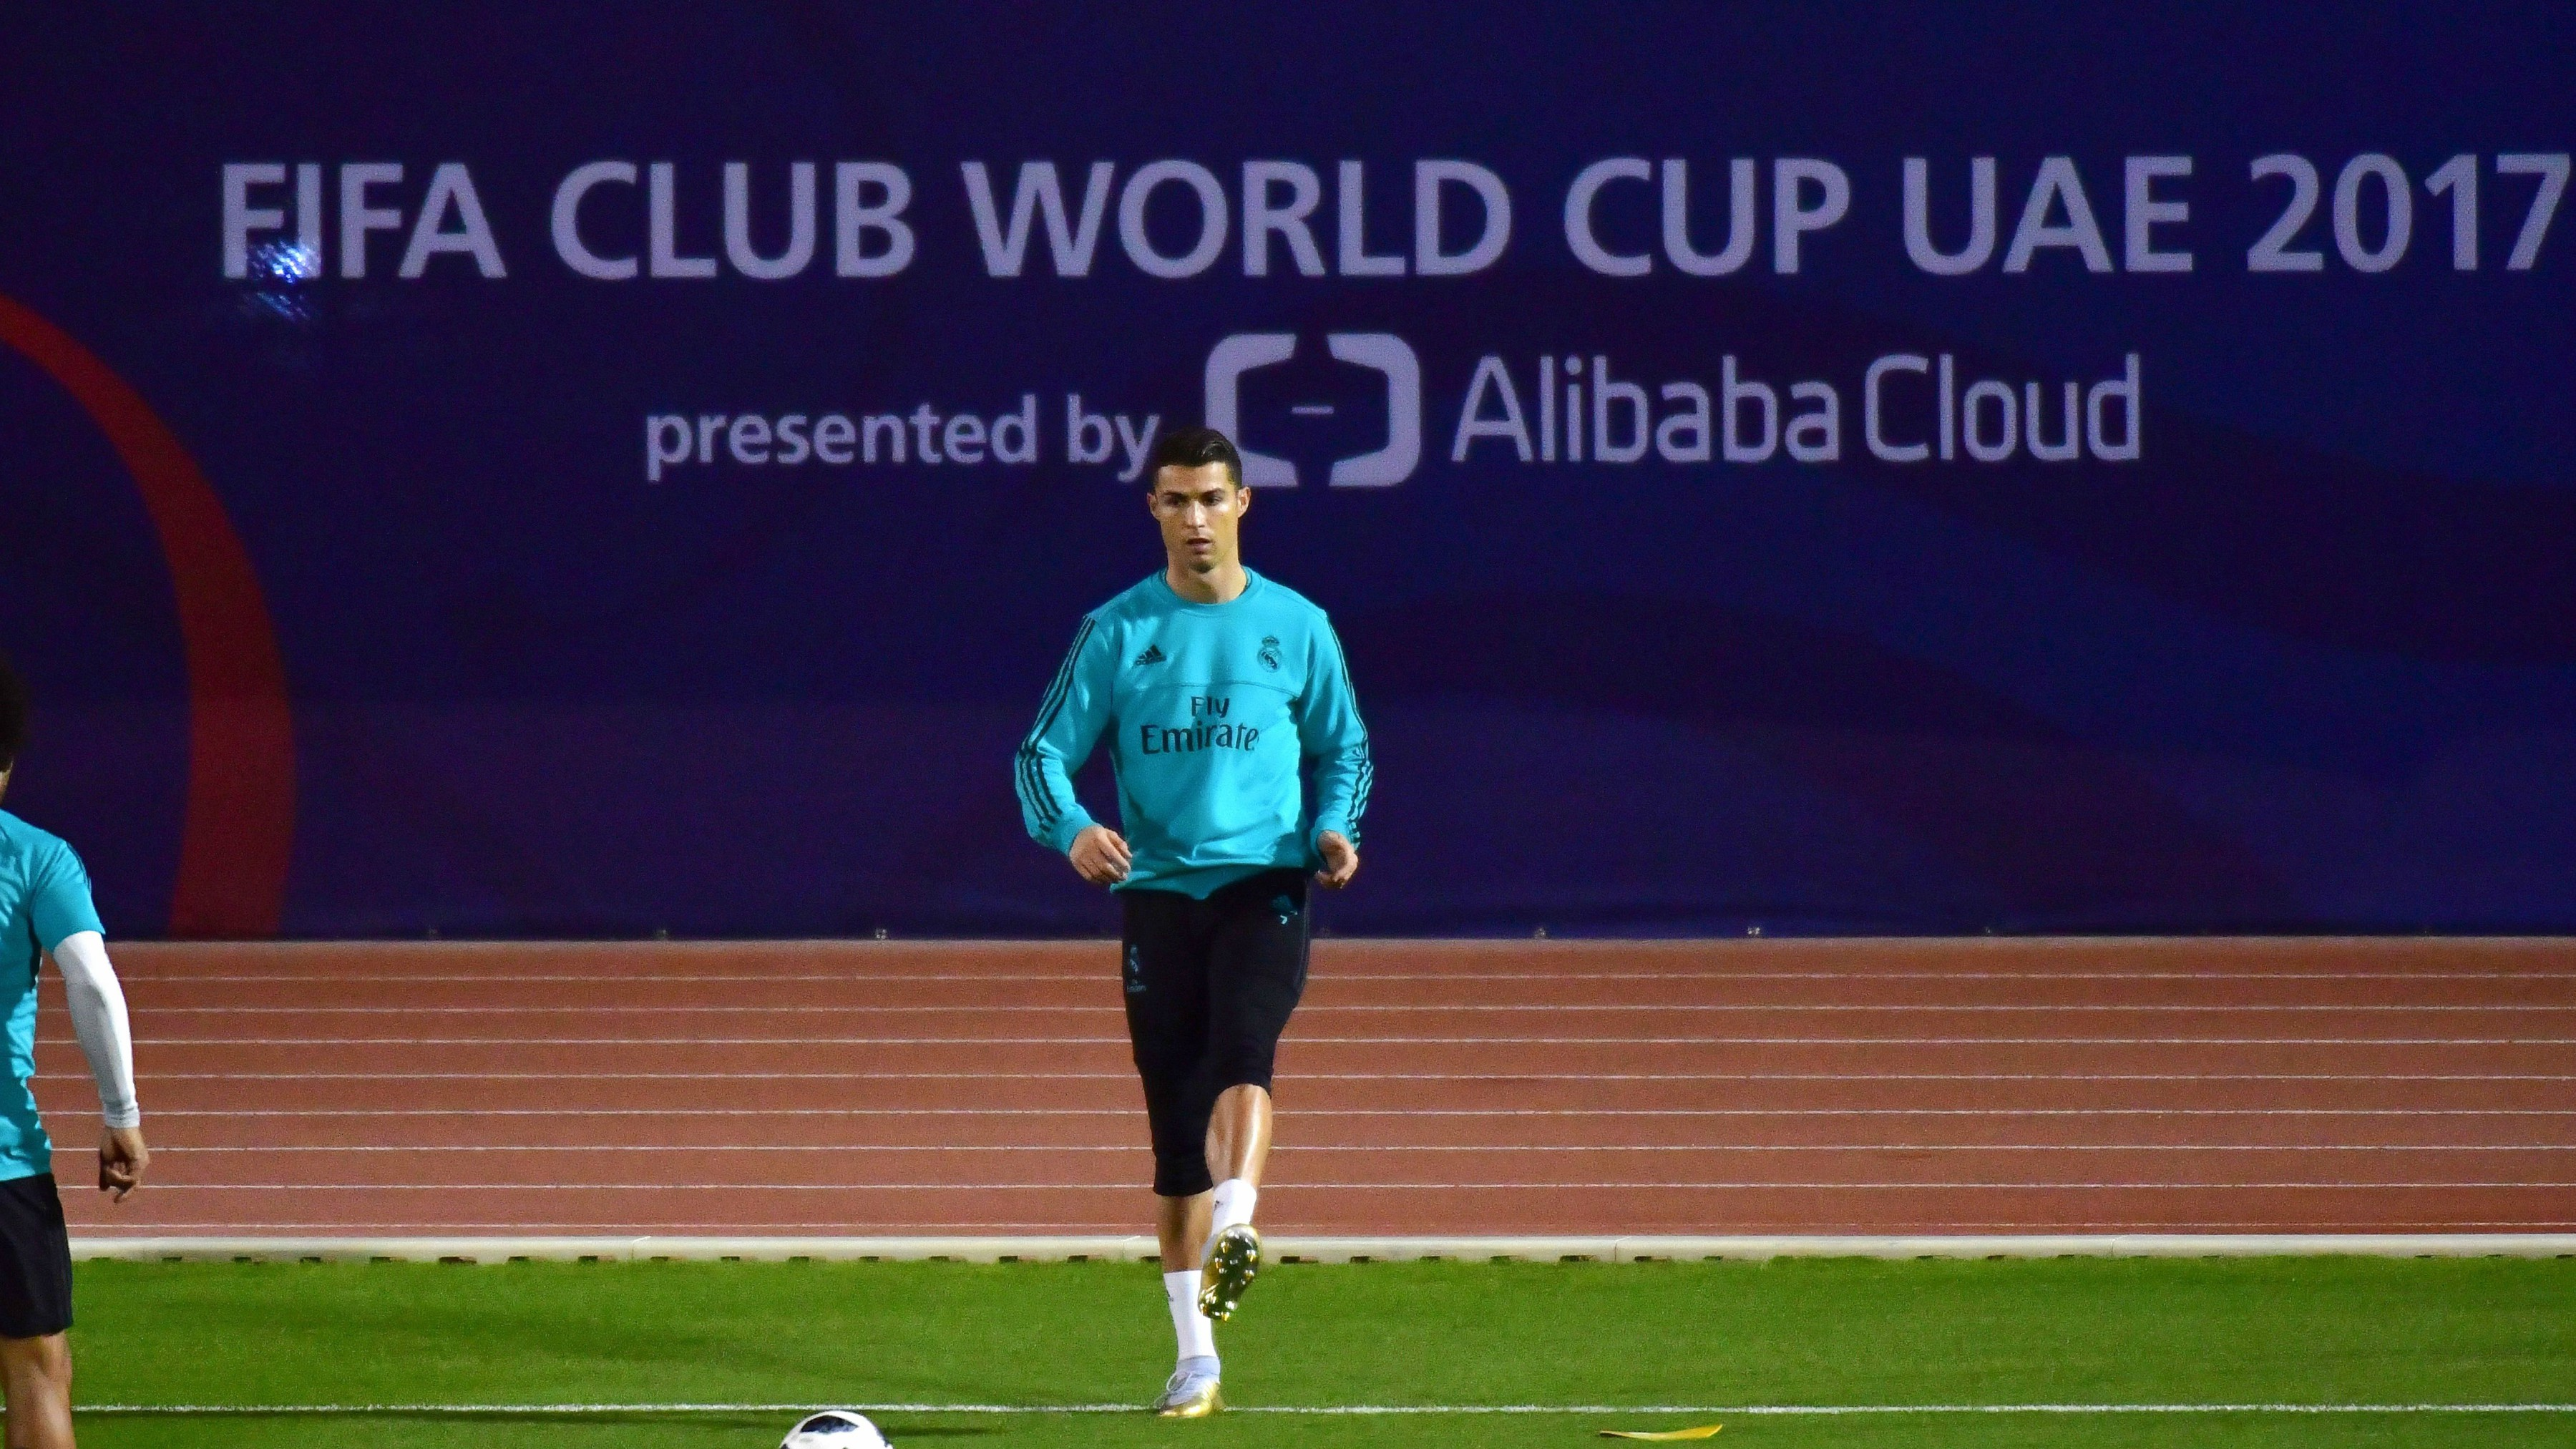 How to Watch Al Jazira vs. Real Madrid: Club World Cup Semifinal 2017 TV Channel, Live Stream